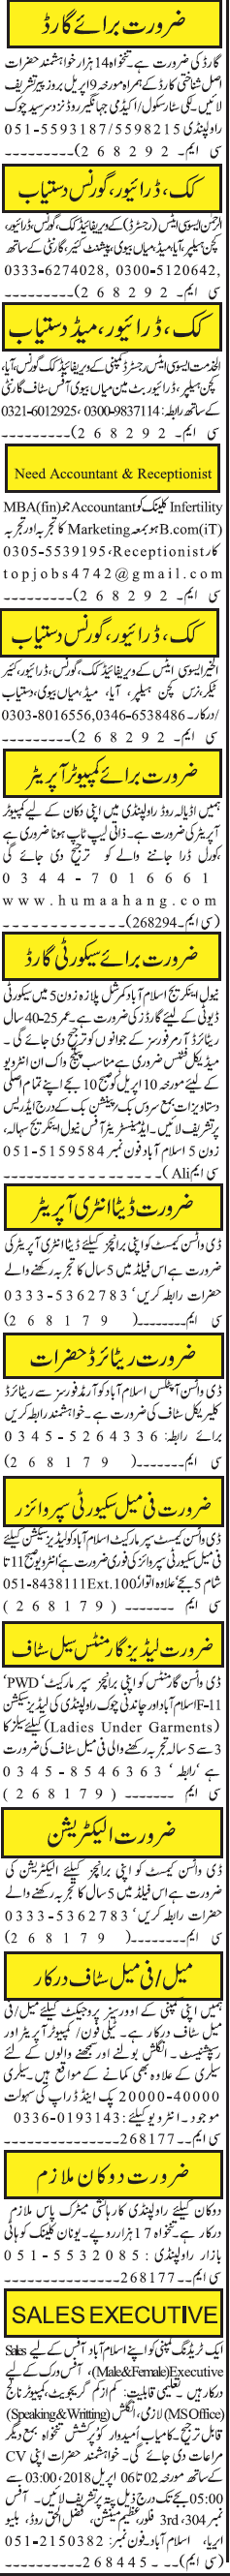 Security Guards, Cook, Drivers, House Maid Job Opportunity